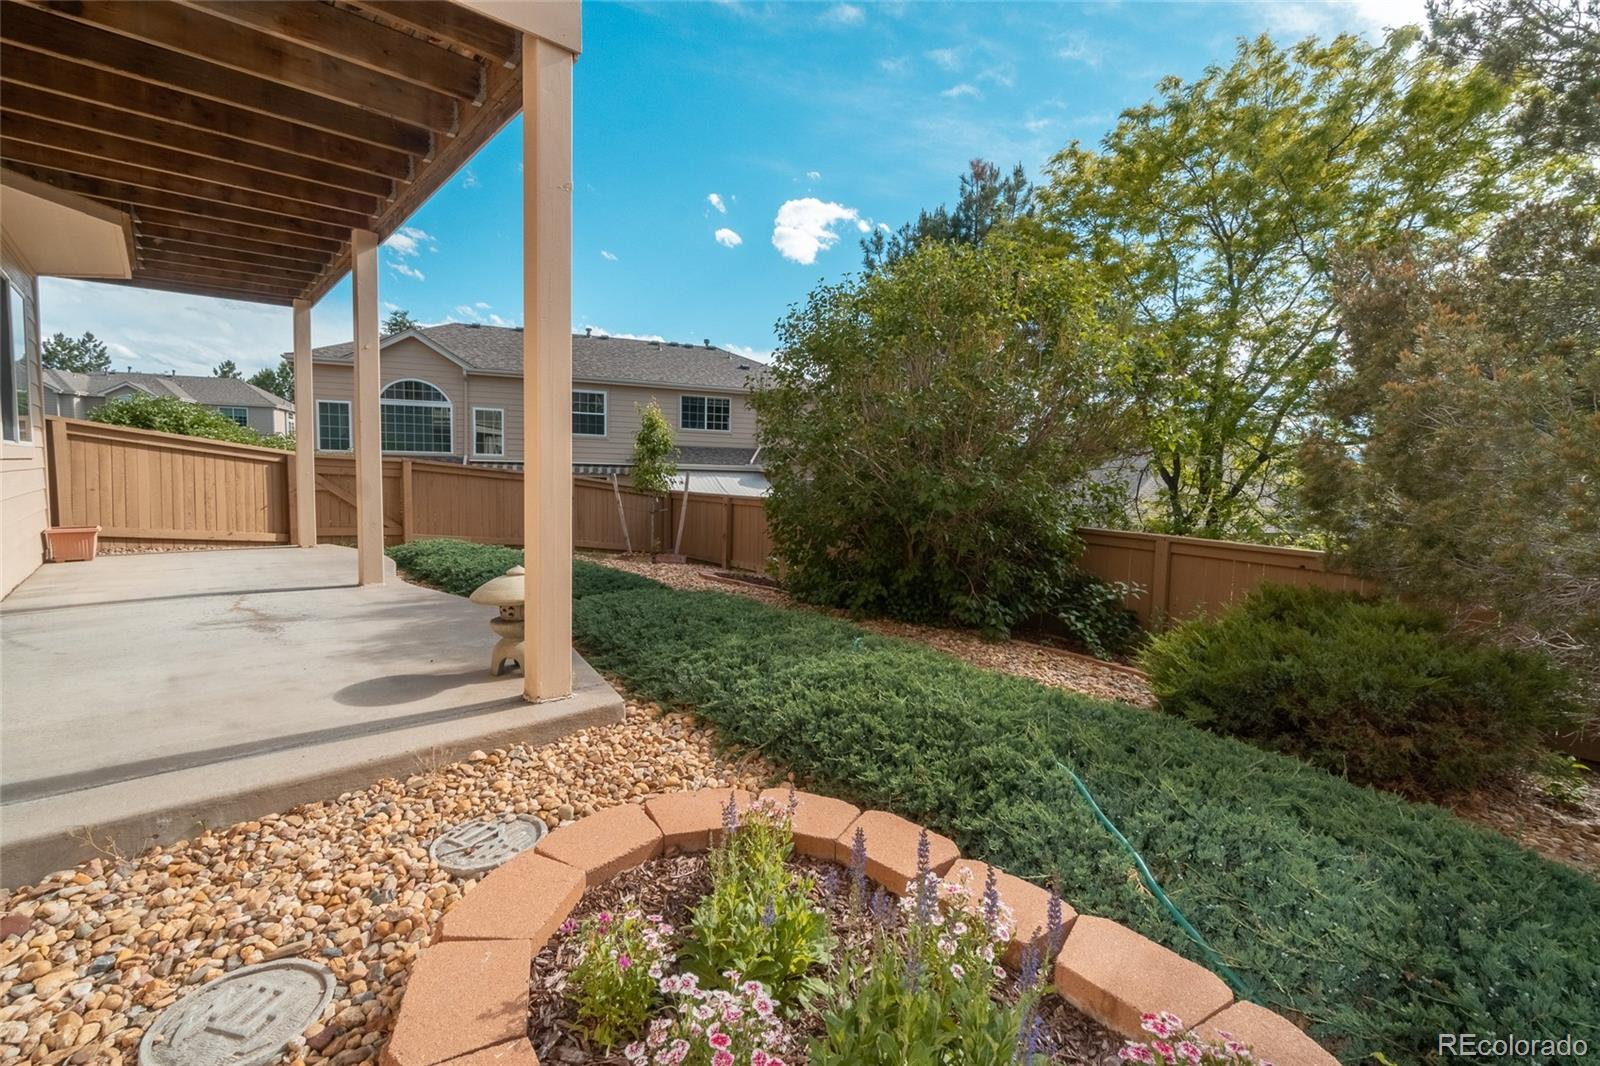 MLS# 4859119 - 25 - 9137 Woodland Drive, Highlands Ranch, CO 80126